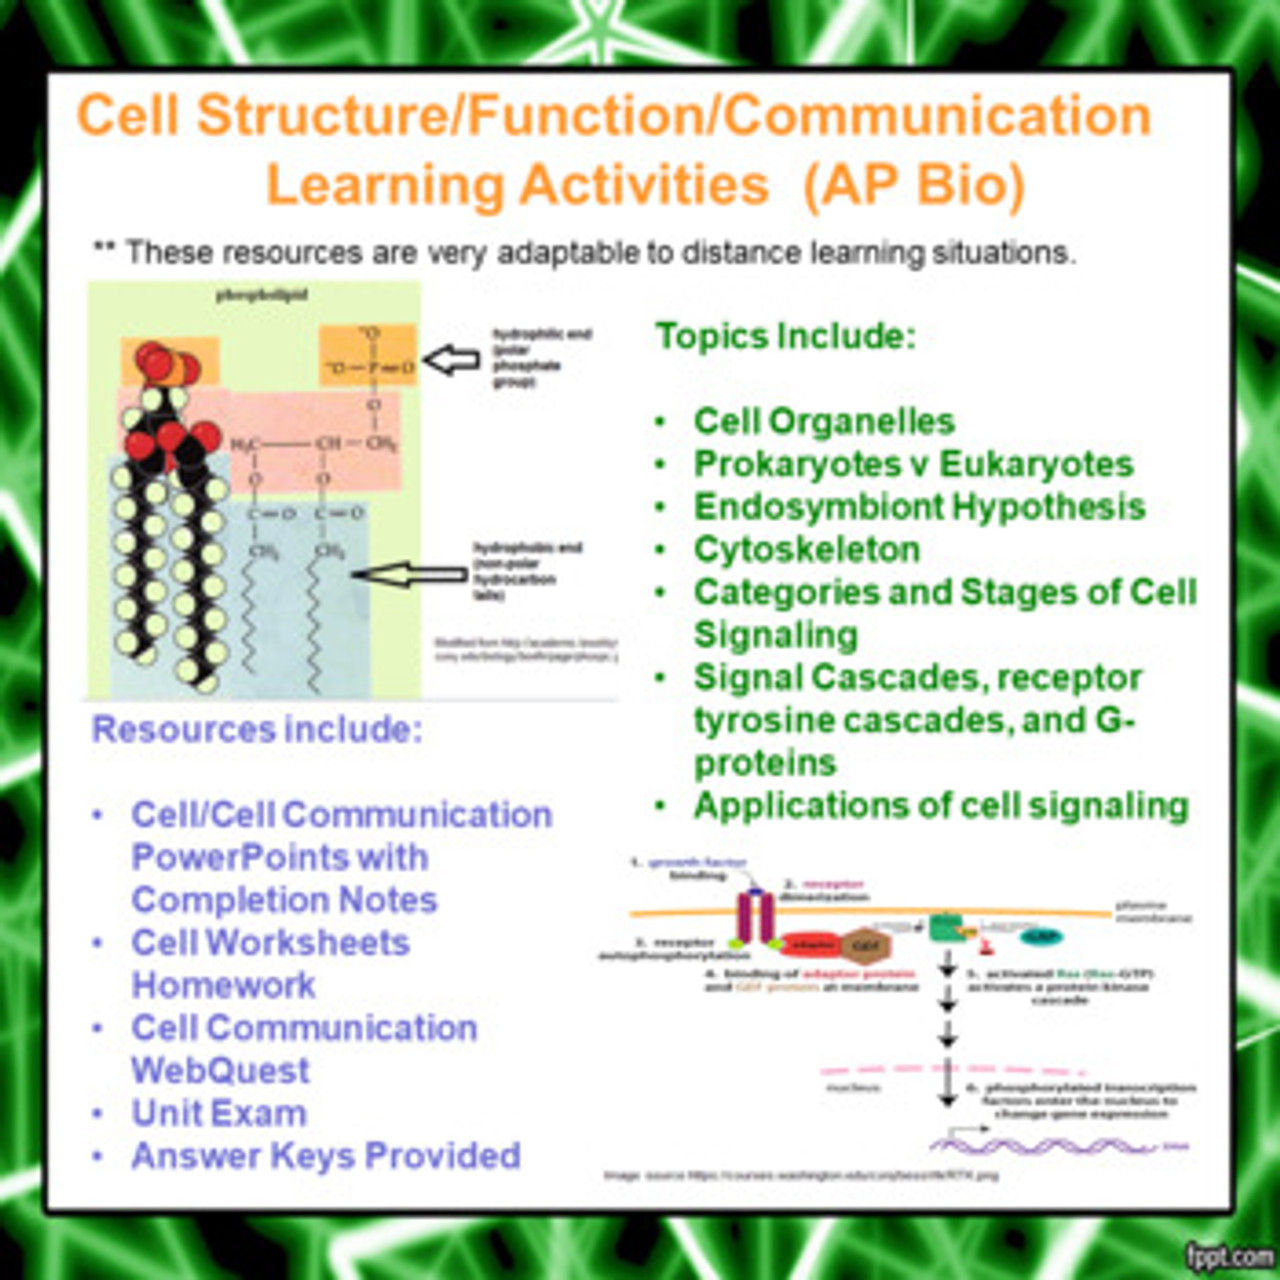 Cell Structure/Function/Communication Activities for AP Biology (Distance Learning)